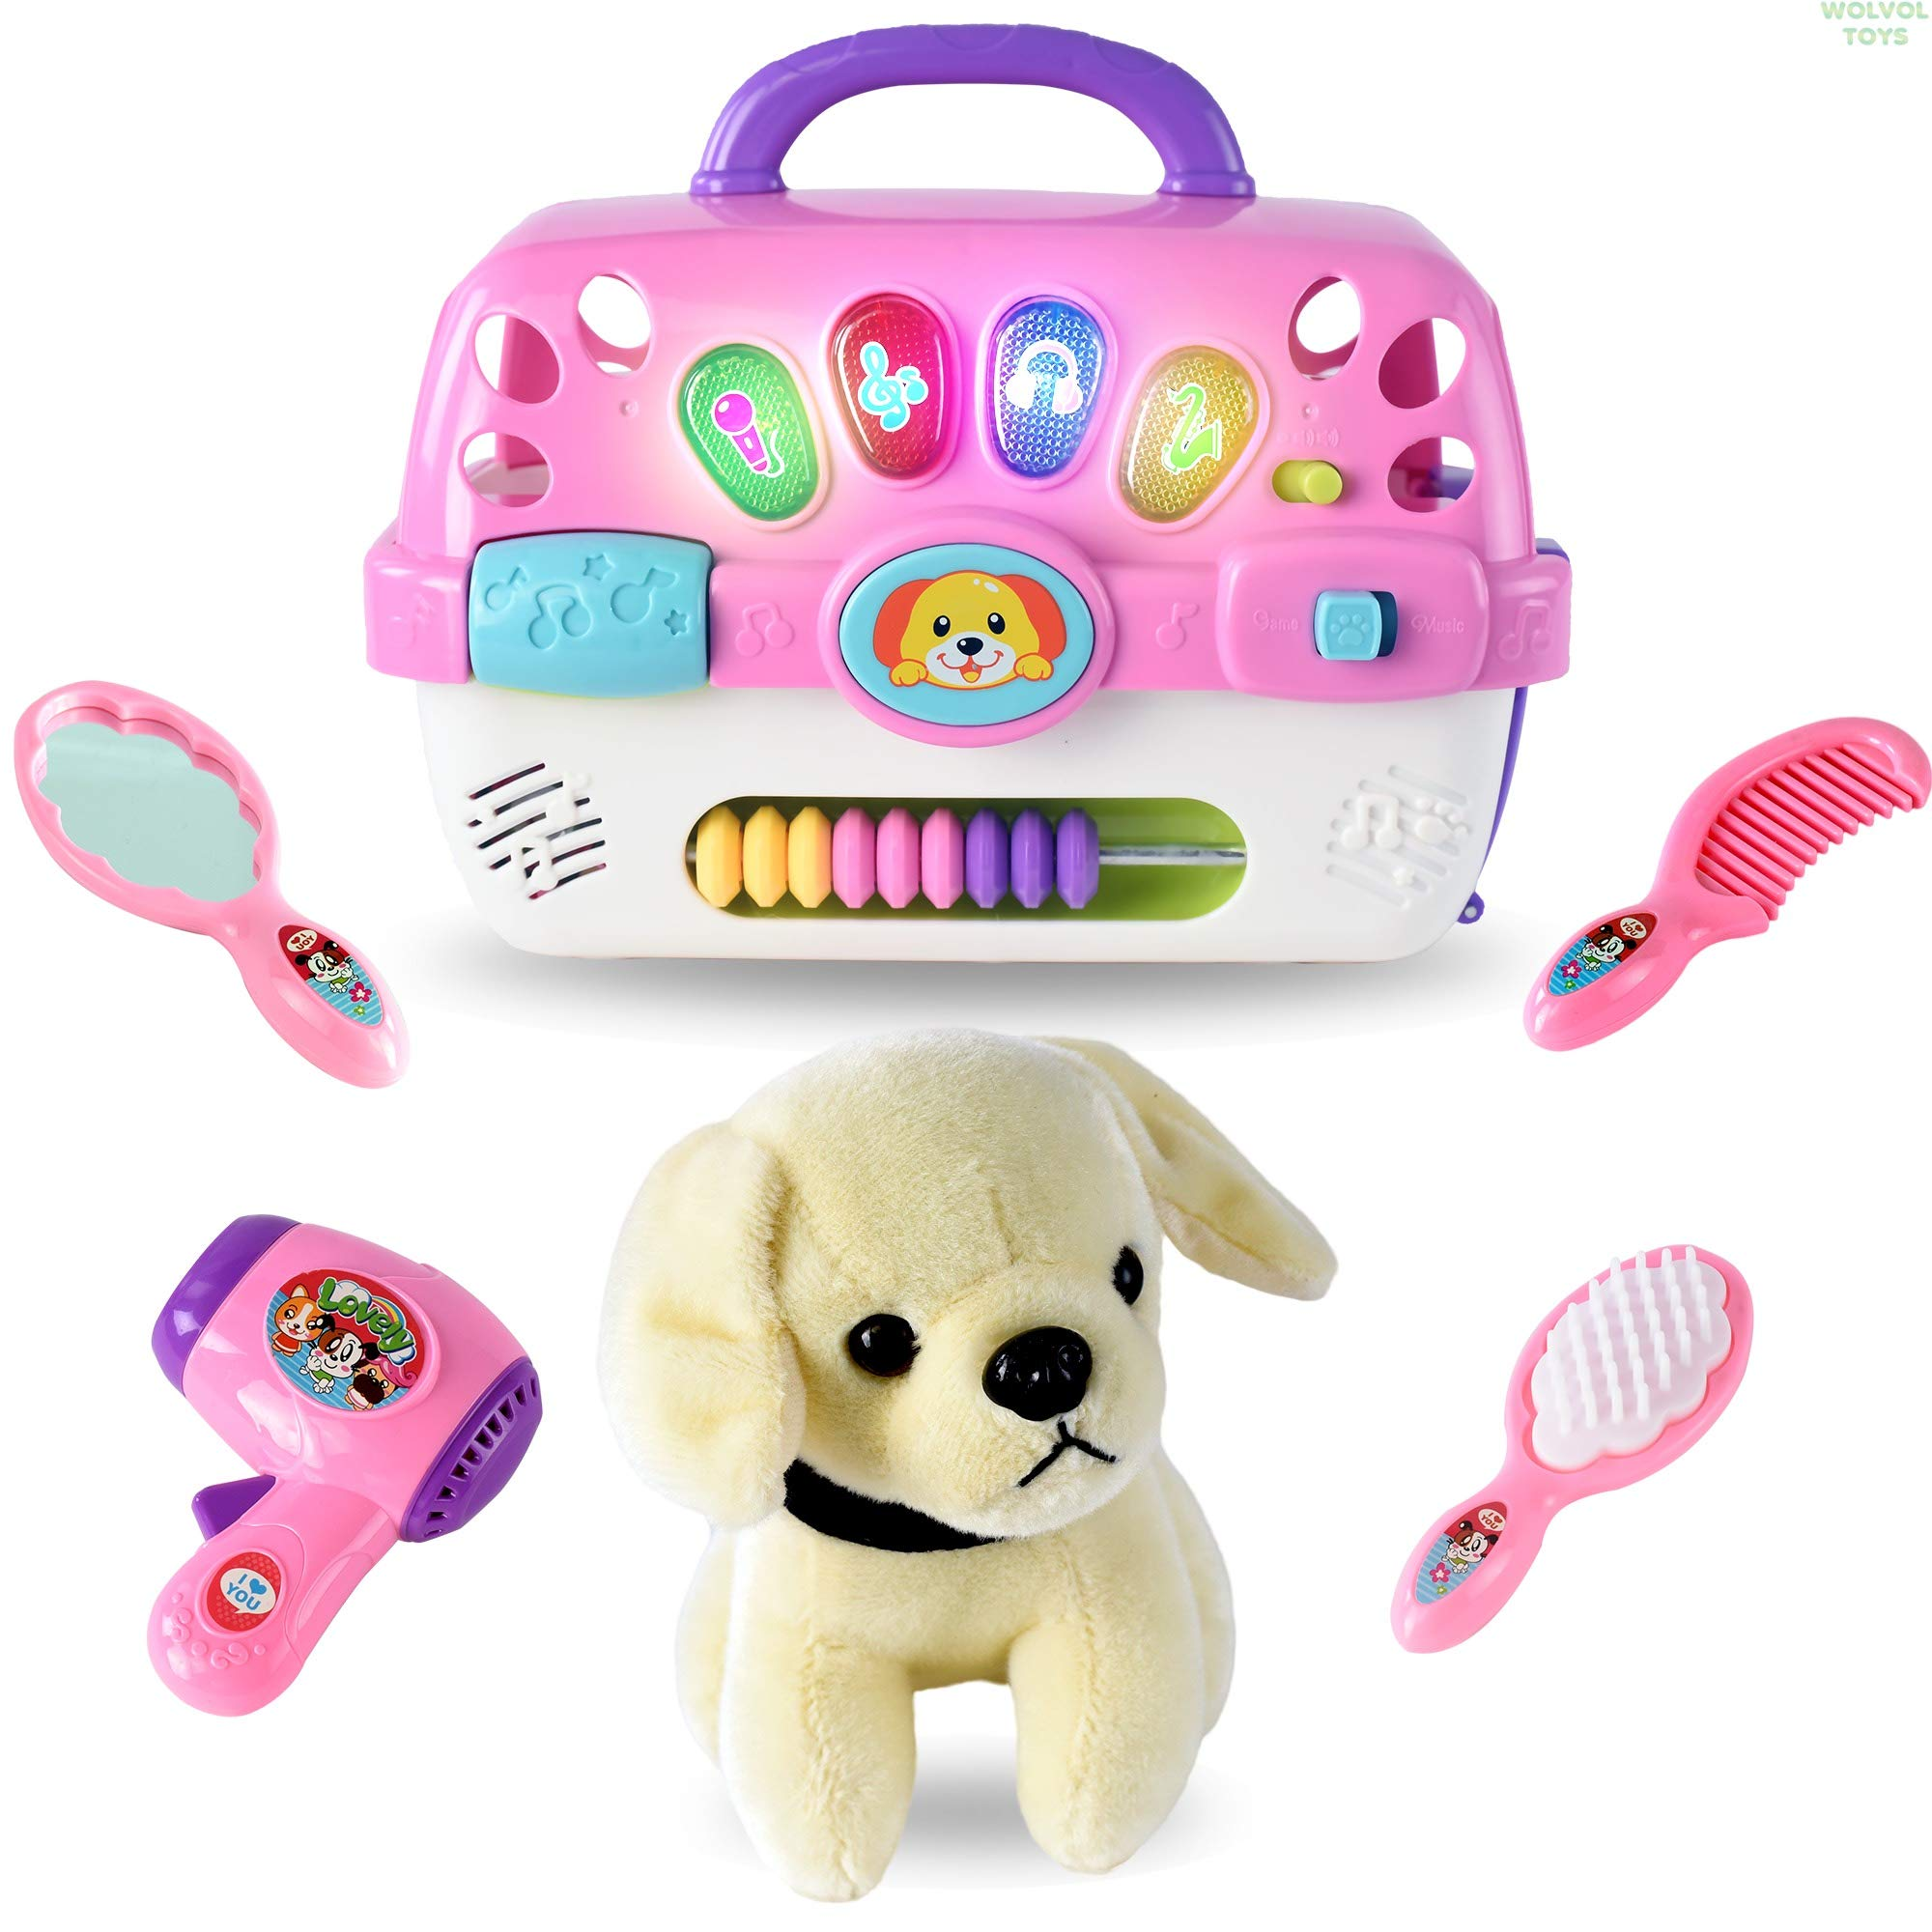 WolVol Pet Vet Kit - Colorful Pet Grooming Playset Toy with Lights & Audio - Imaginative Pretend Play for Kids - for Buys & Girls by WolVol